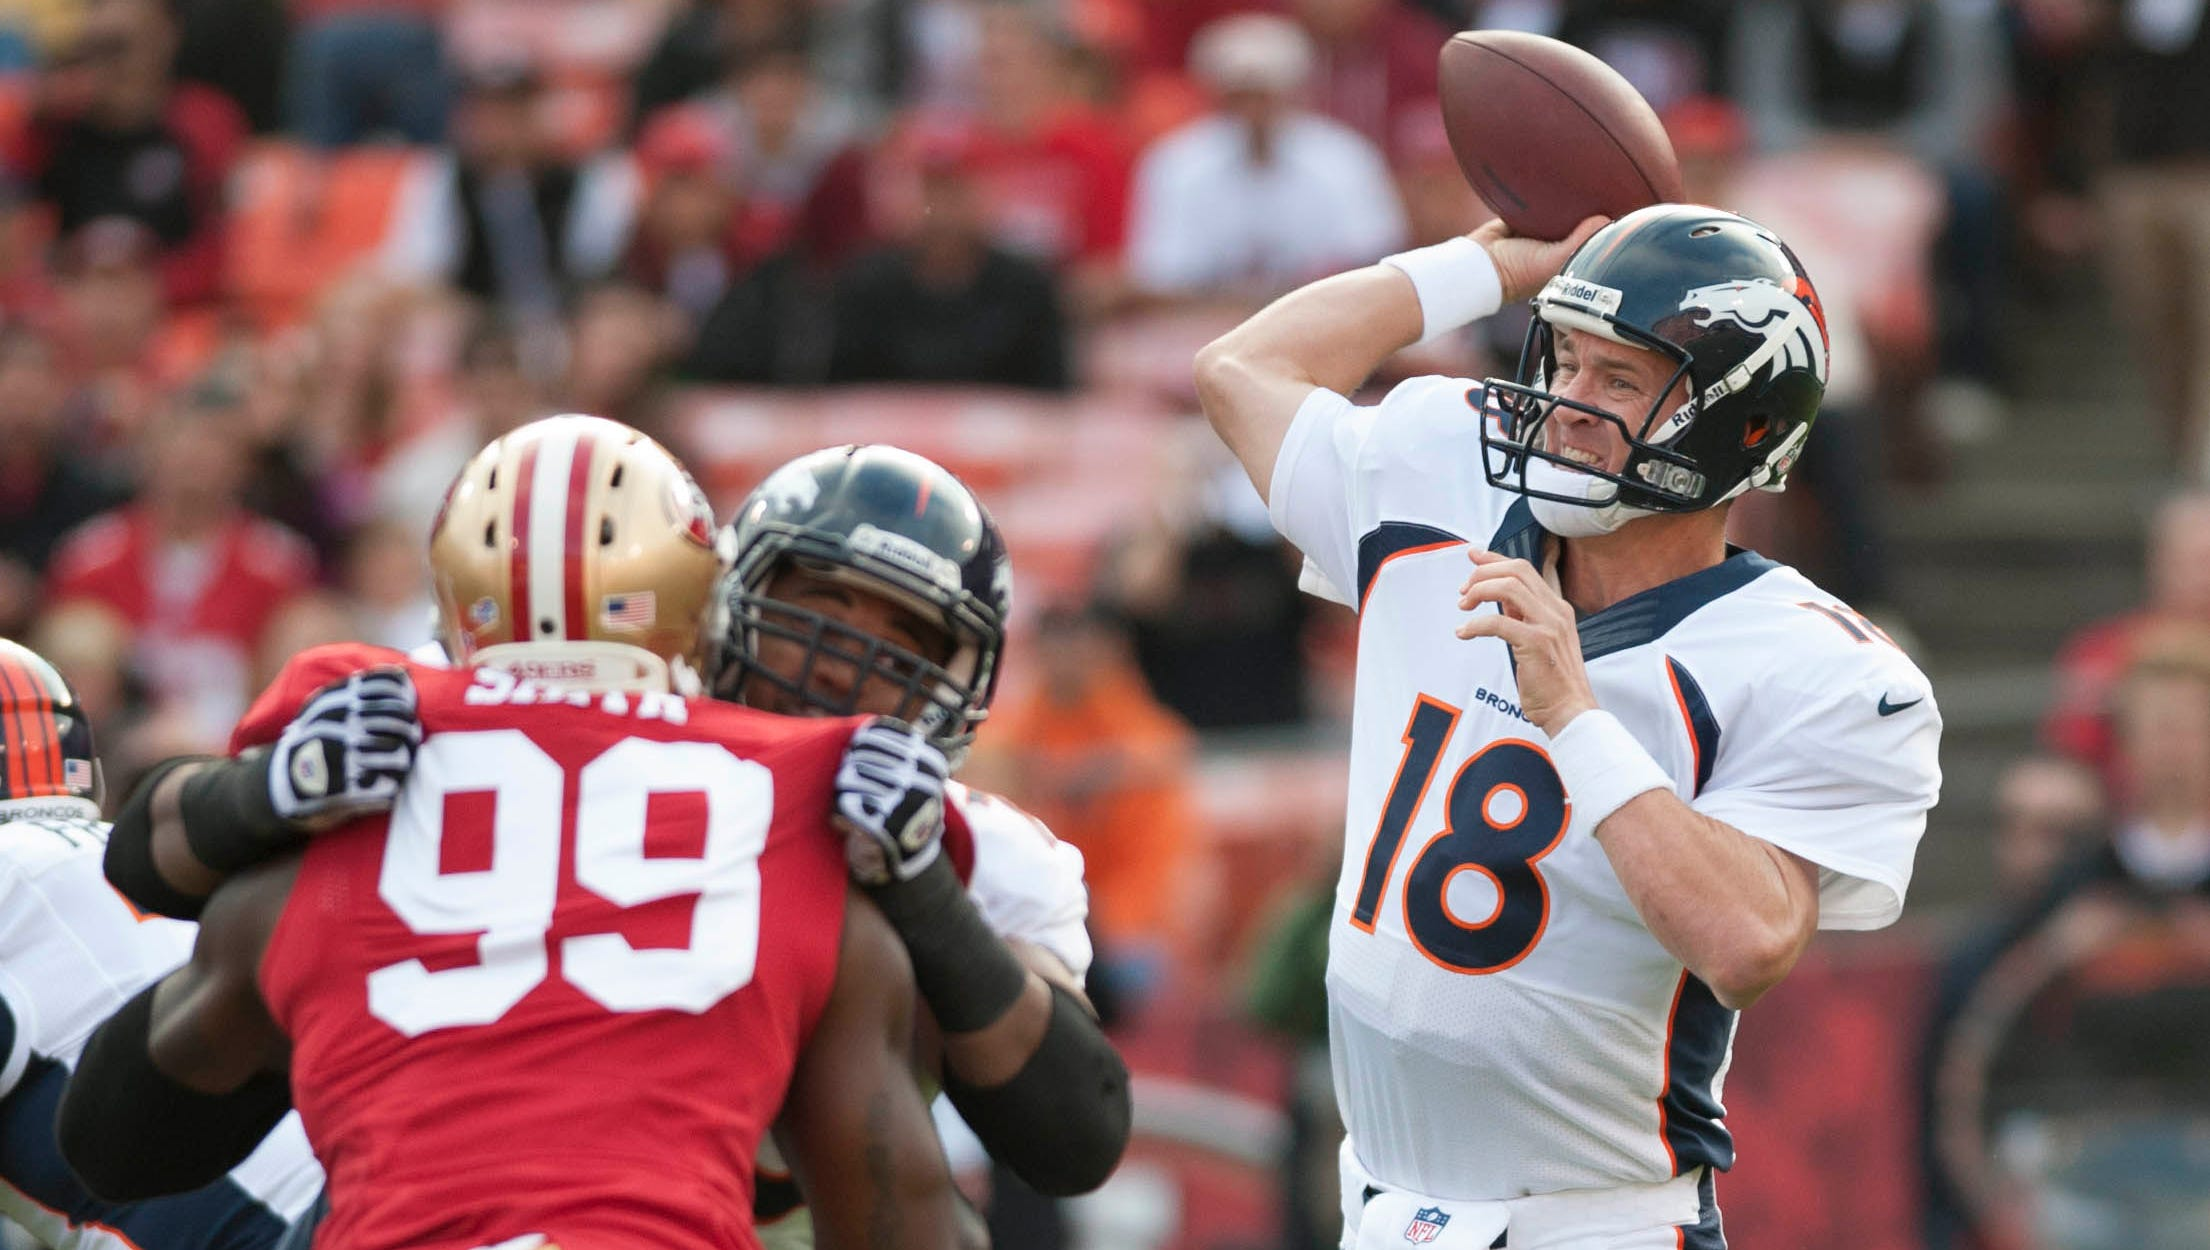 Denver Broncos quarterback Peyton Manning (18) throws a pass during the first quarter of the game against the San Francisco 49ers at Candlestick Park.